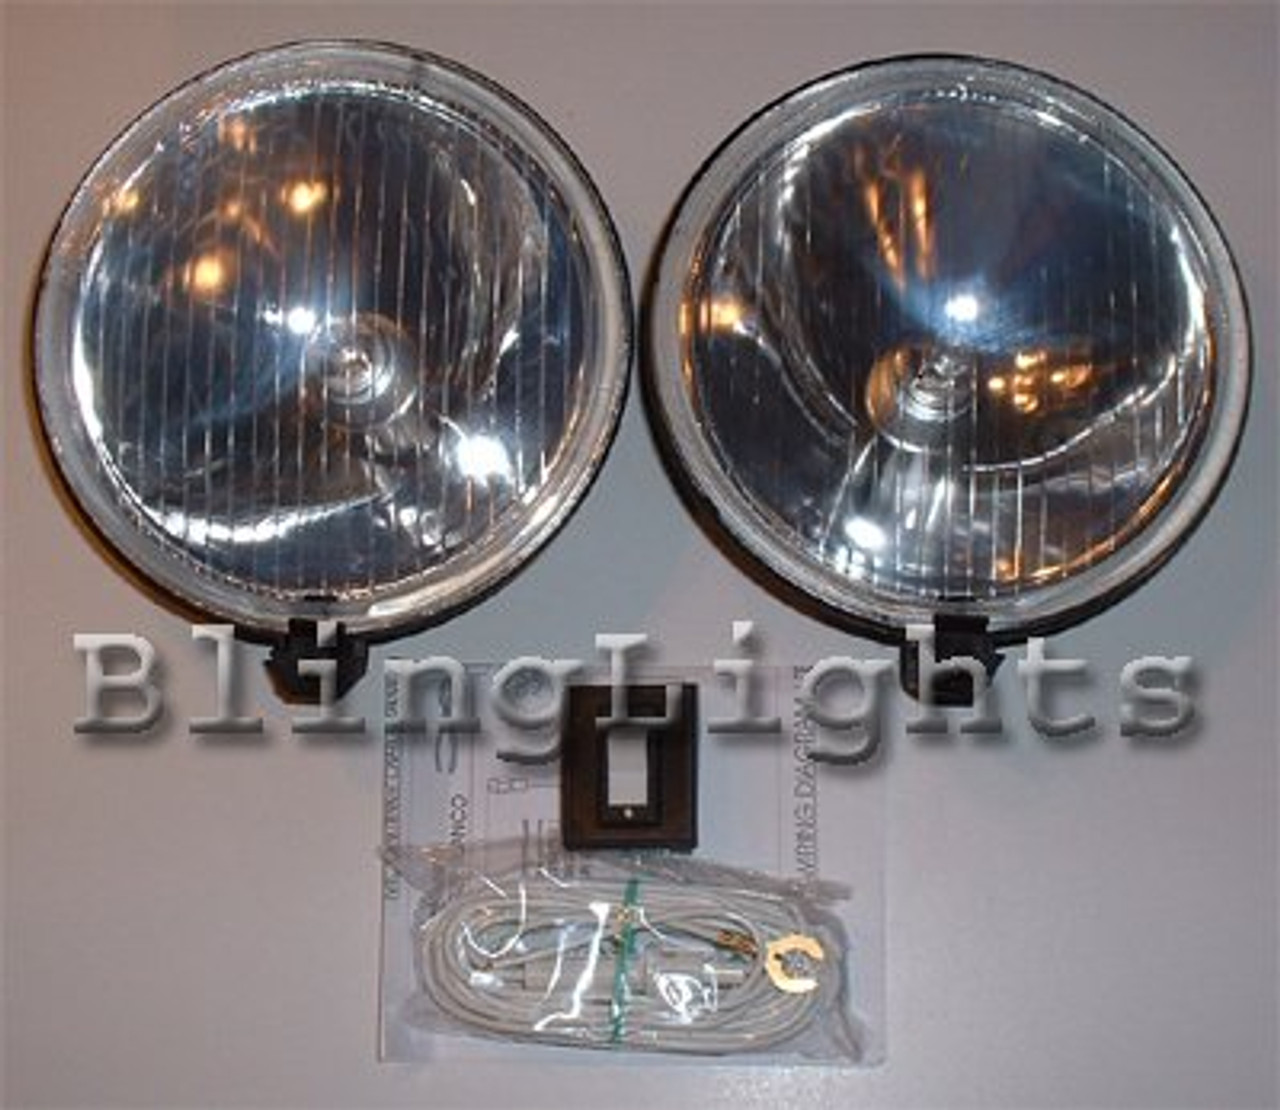 1991-1996 ACURA LEGEND EREBUNI BODY KIT BUMPER FOG LIGHTS